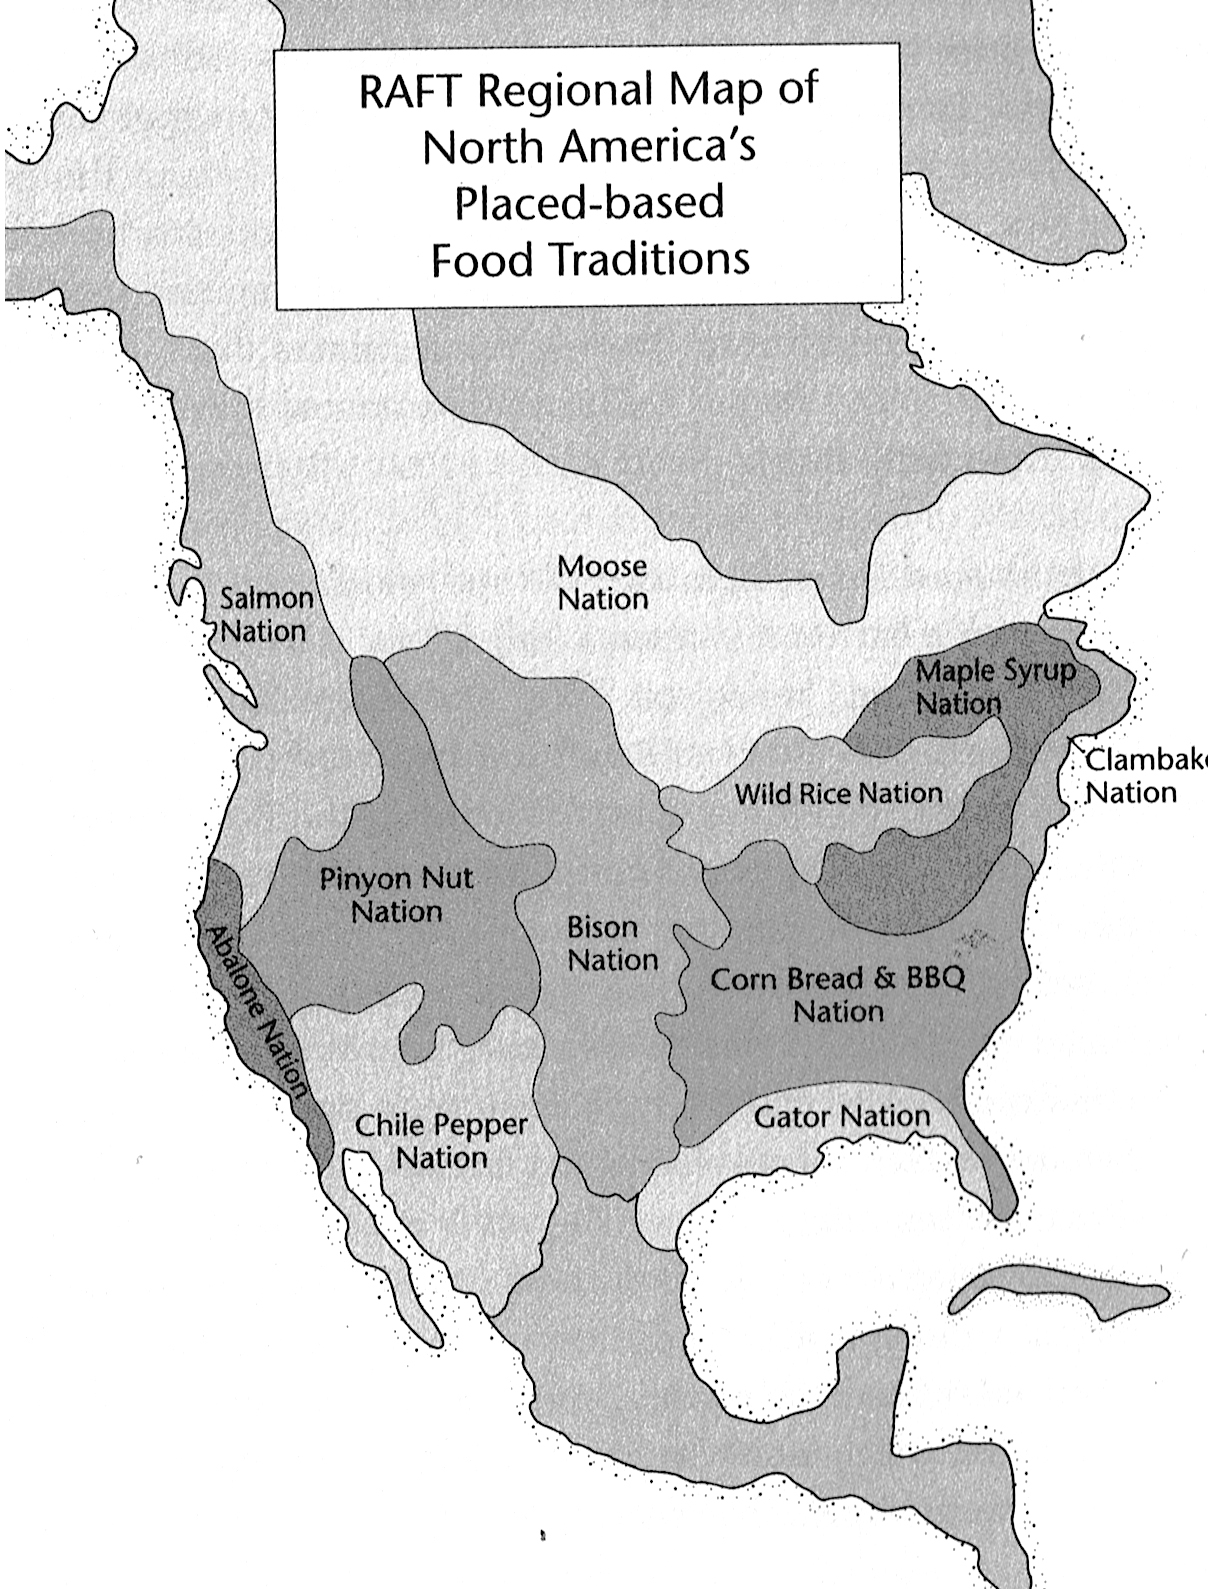 NA Place-Based Food Traditions Map